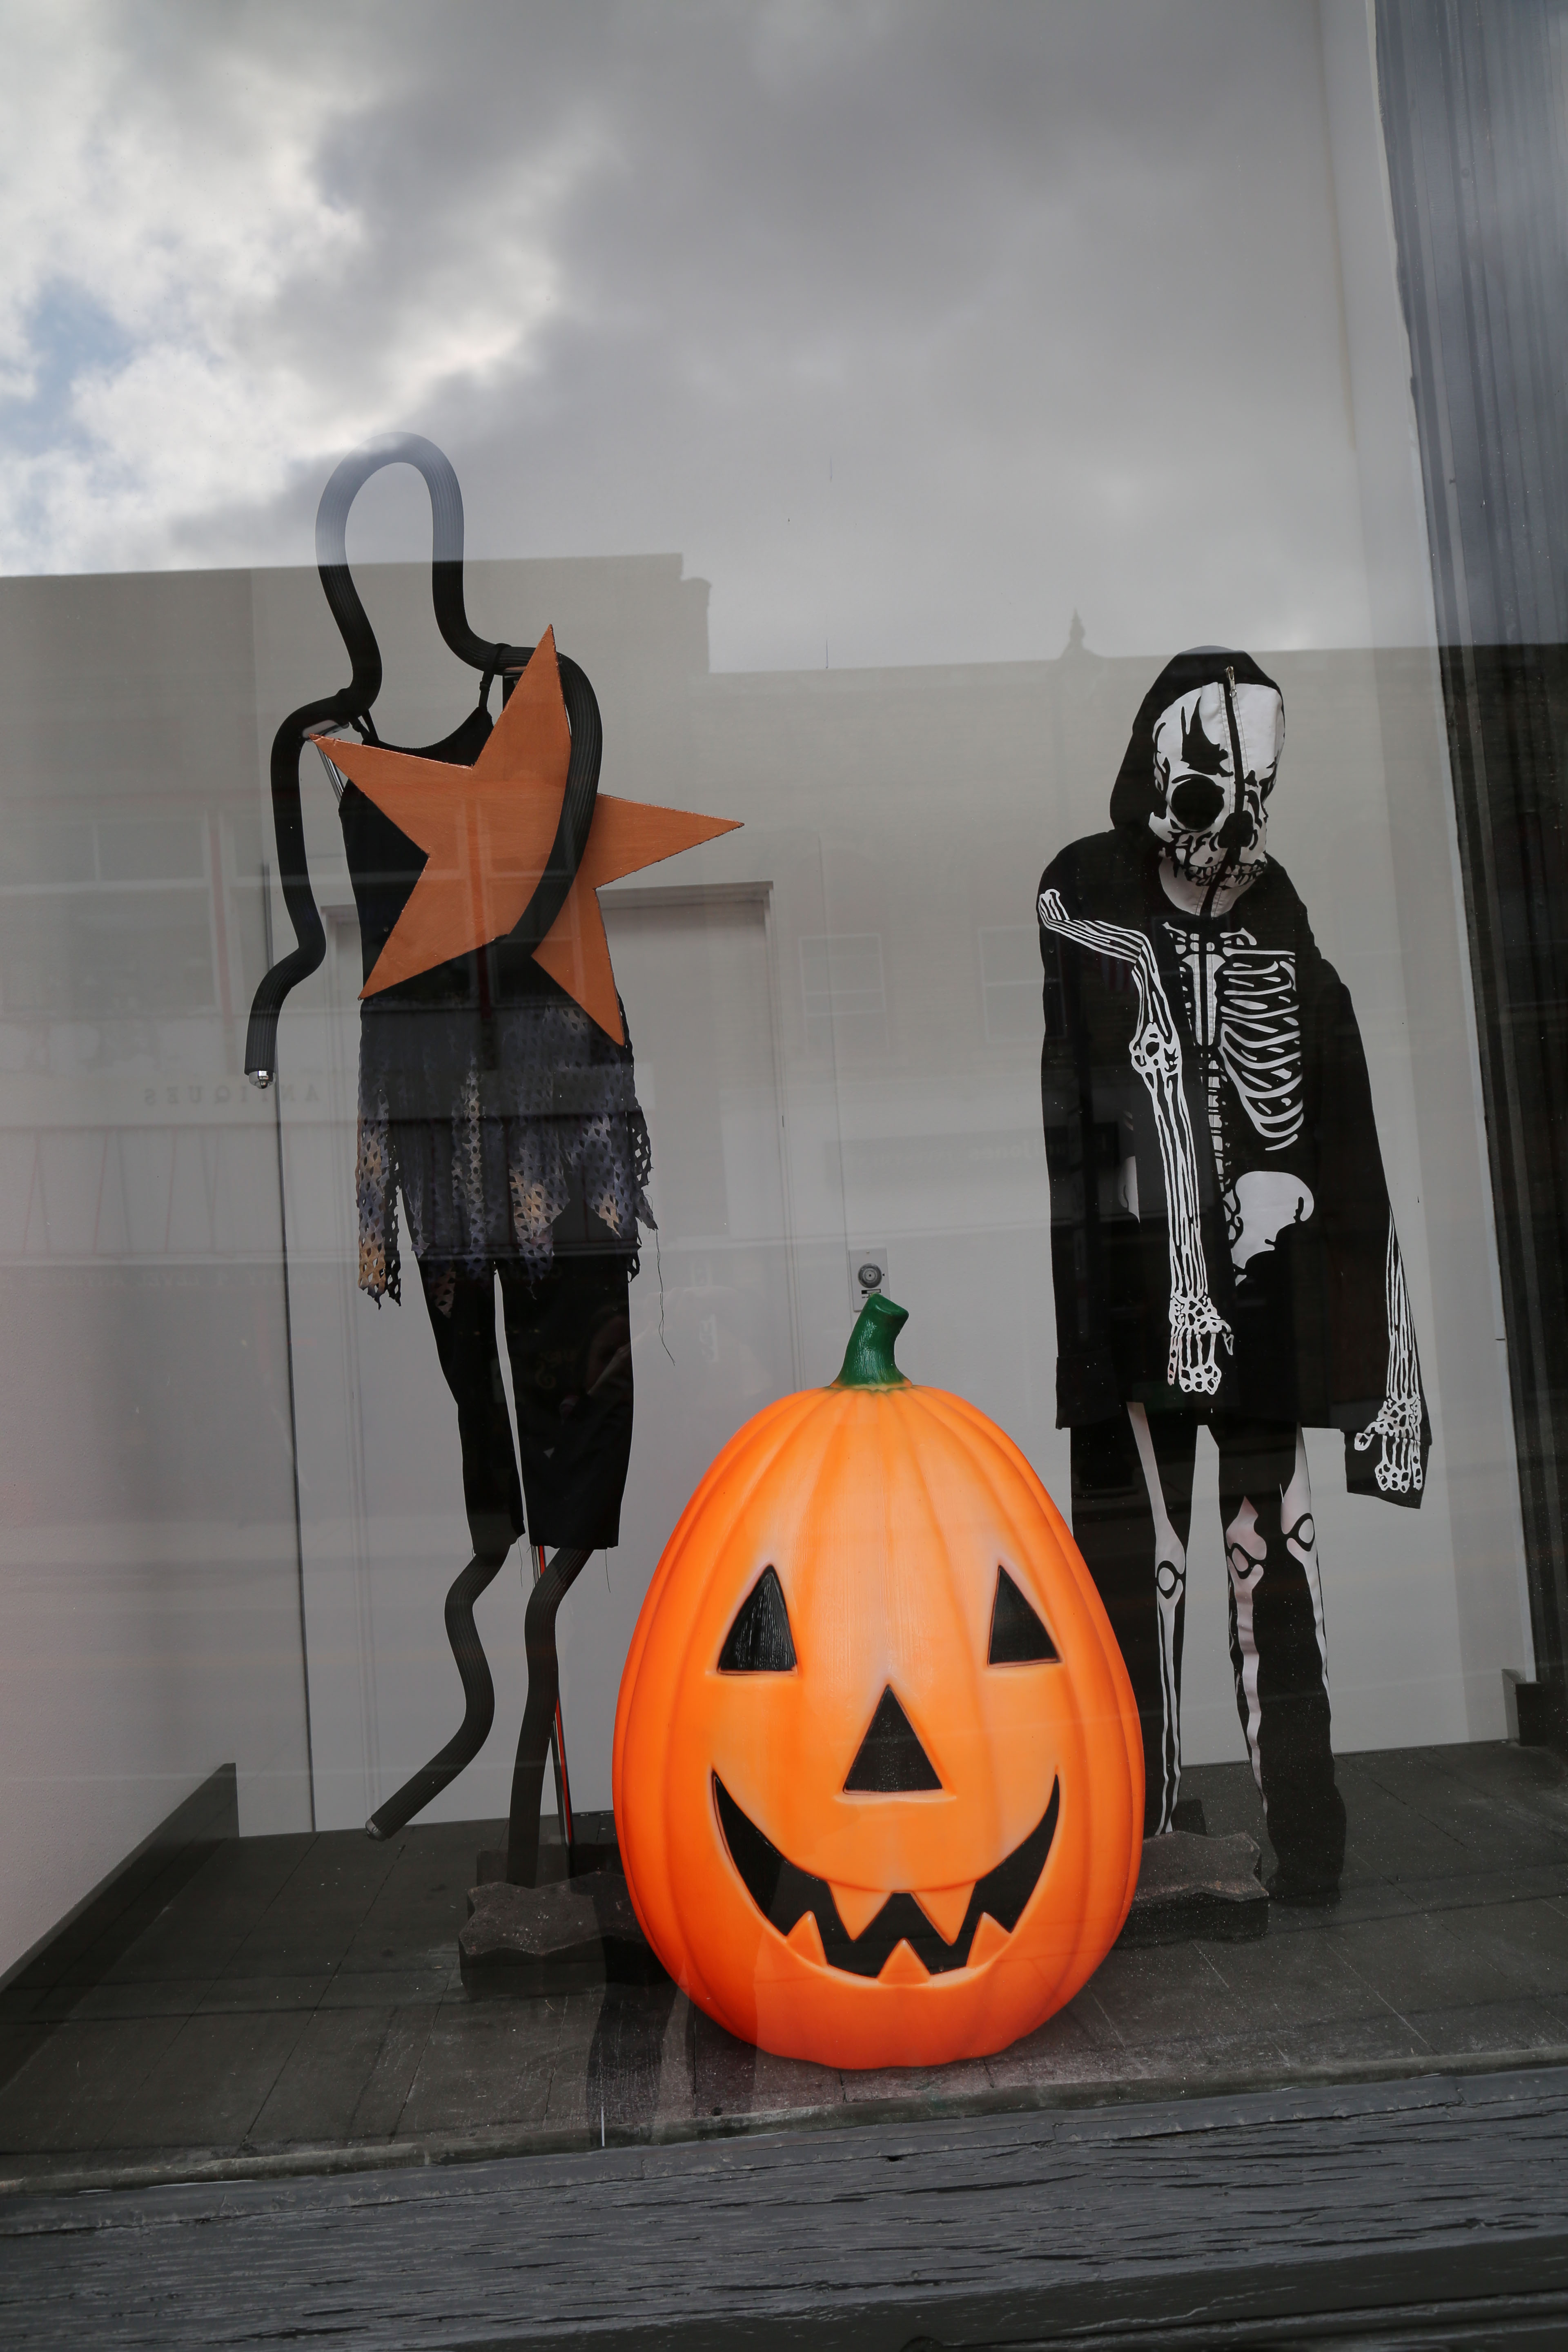 Costumes on mannequins and a large jack 'o lantern